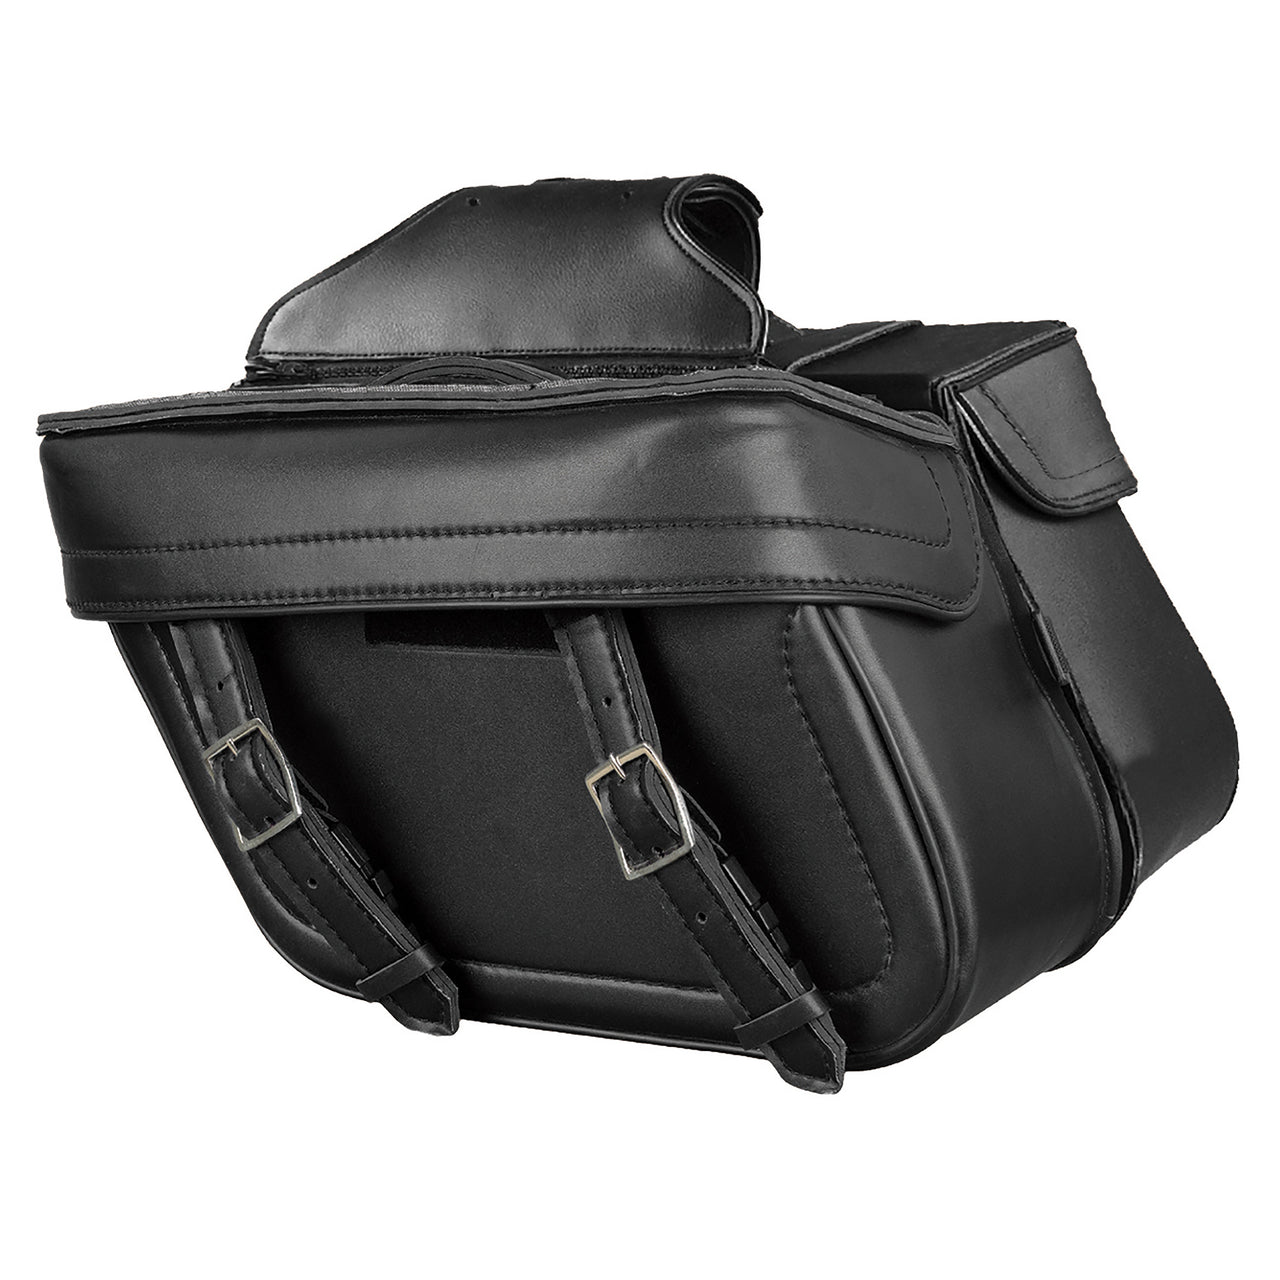 Zip Off PVC Throw Over Saddle Bag w/ Double Strap Front (14.5X9.5X6X19.5) - HighwayLeather